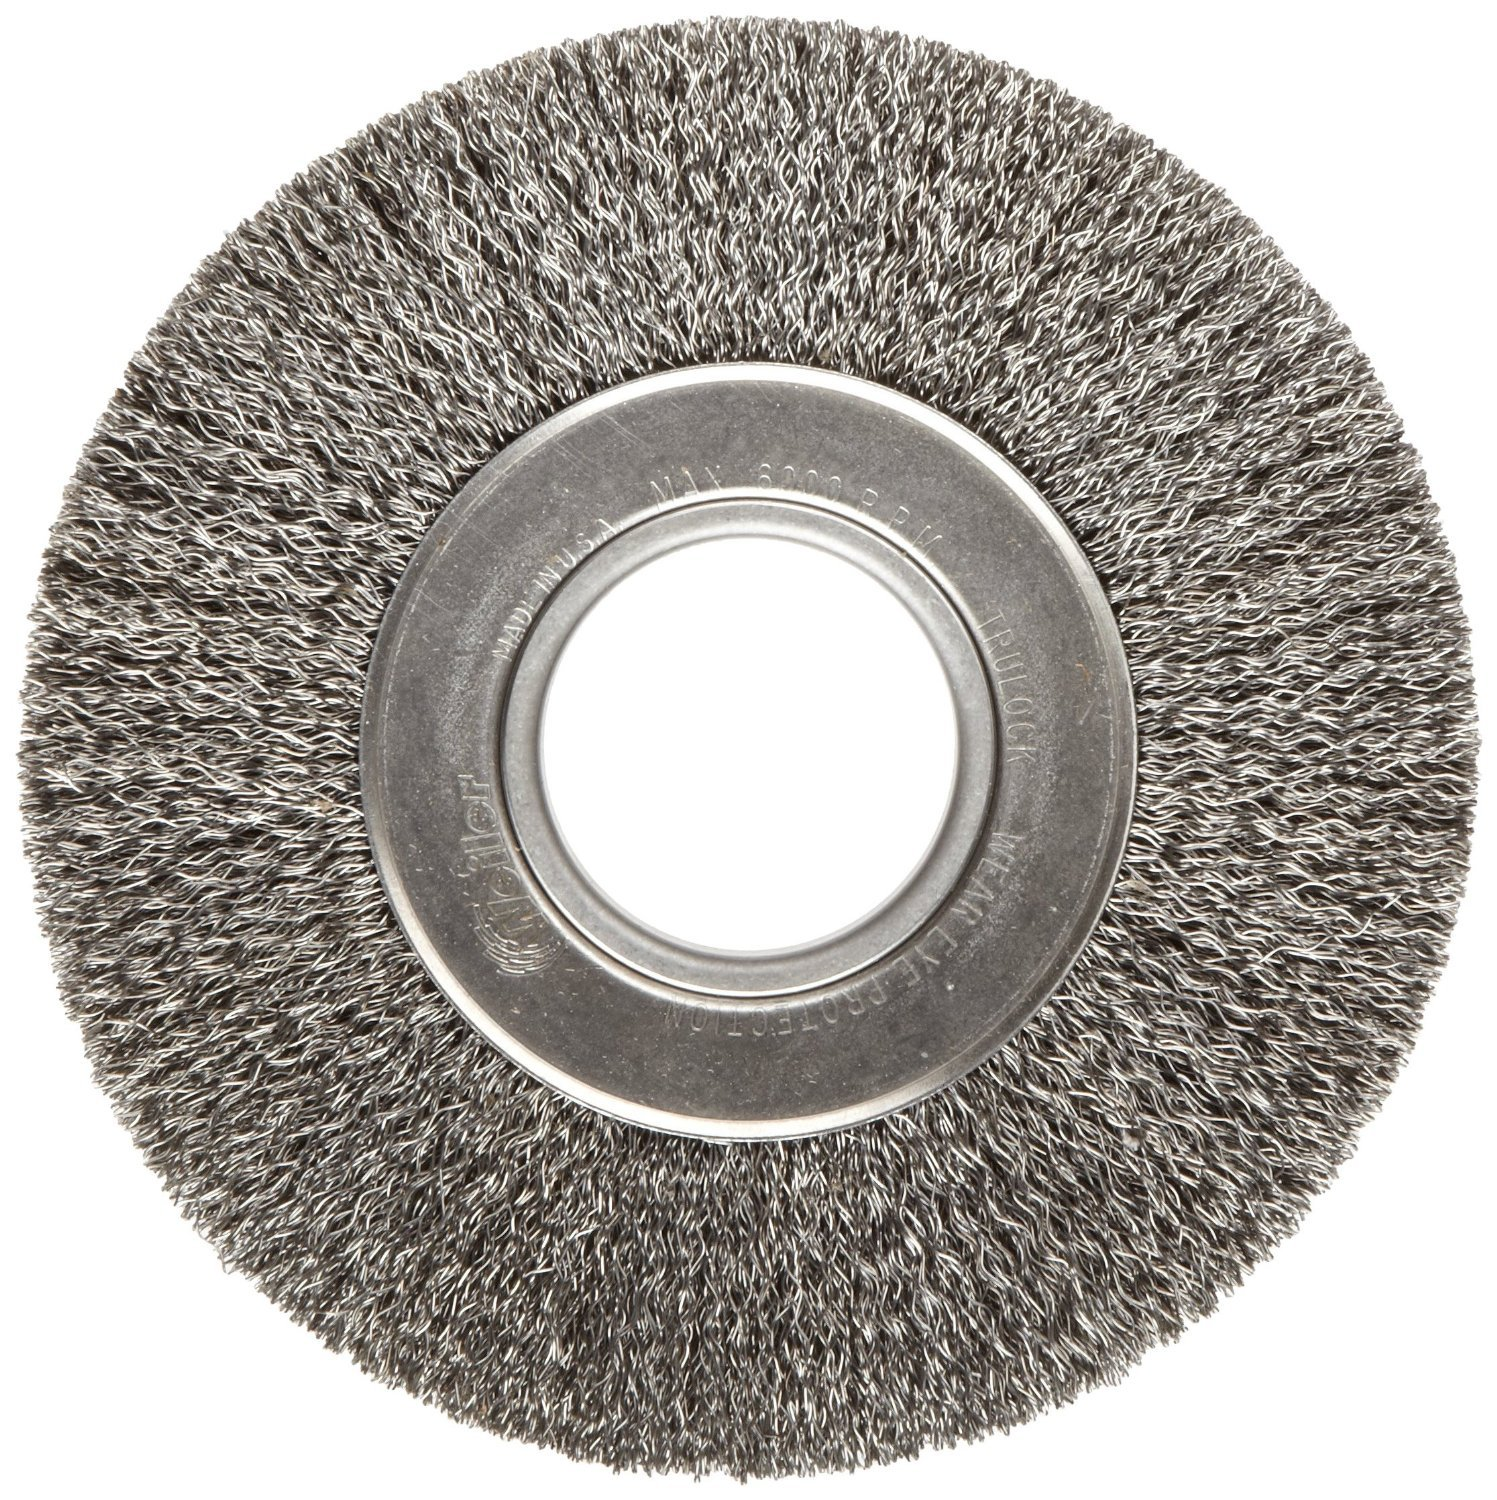 Forney  1-1//2 in Crimped  Wire Wheel Brush  Metal  6000 rpm 1 pc.